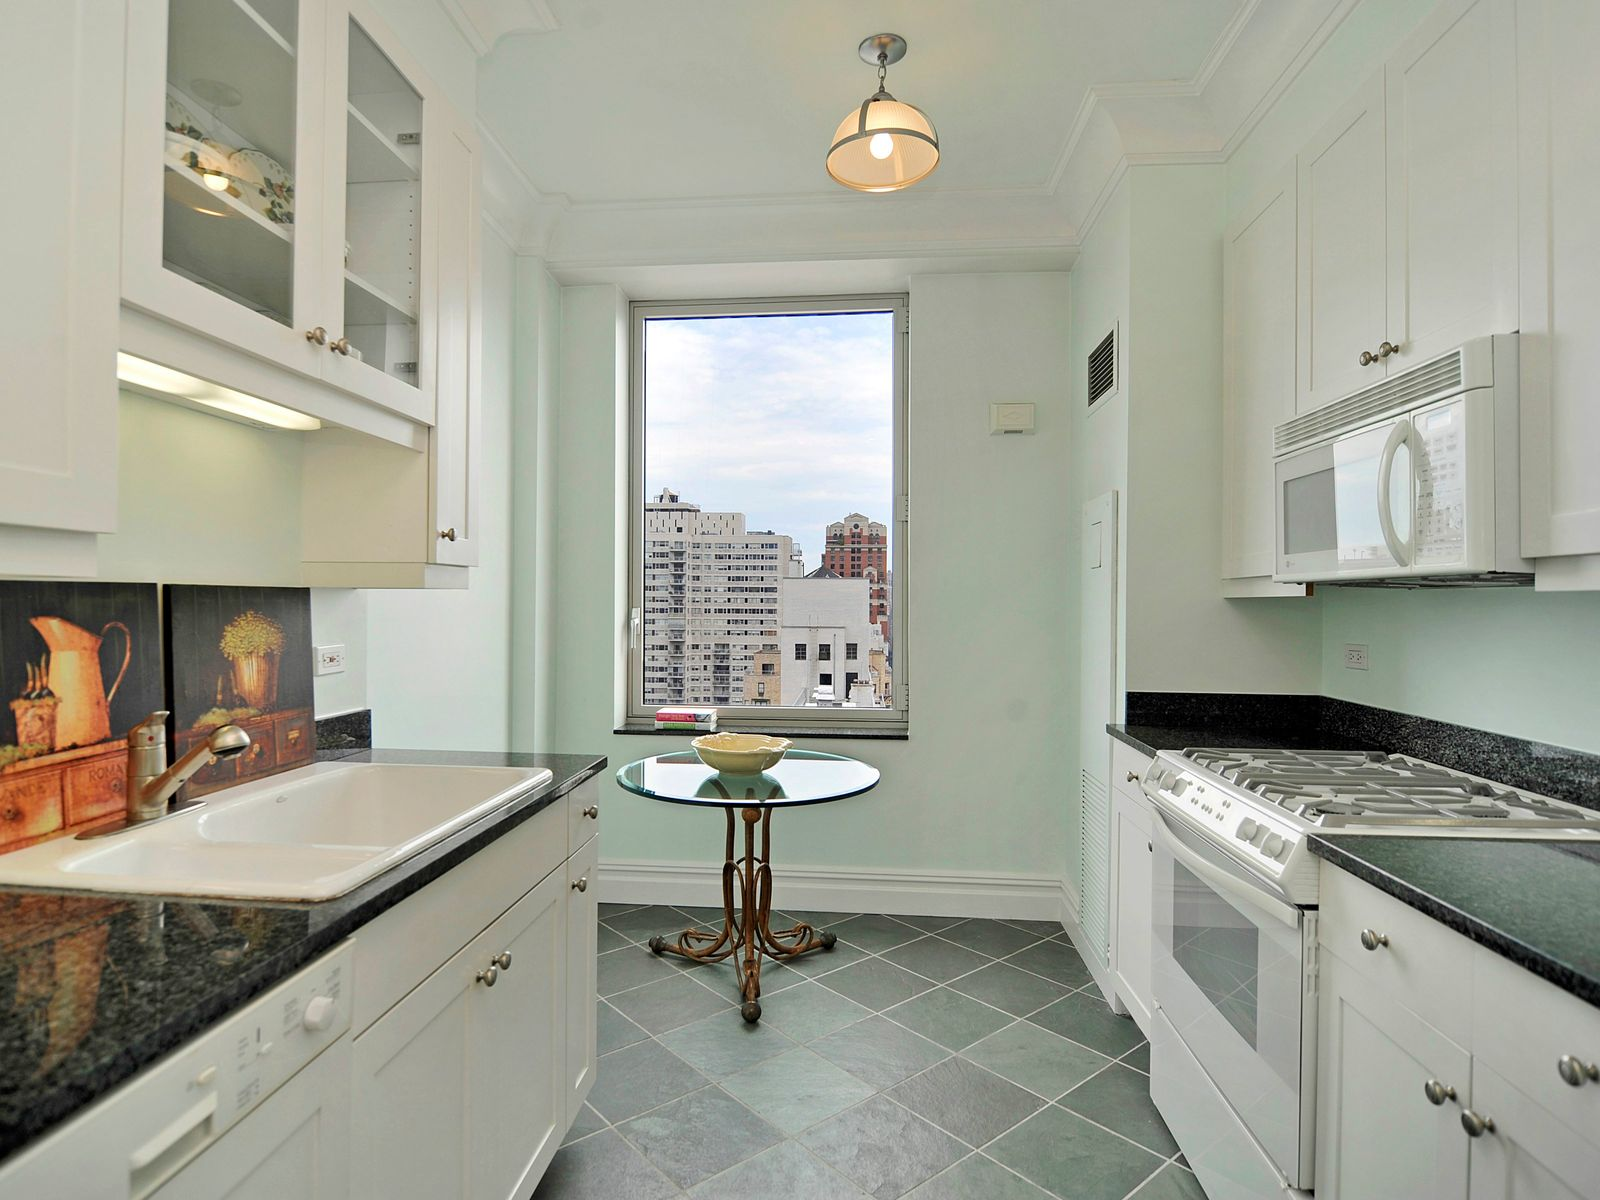 The Chatham Condo, 181 East 65th Street